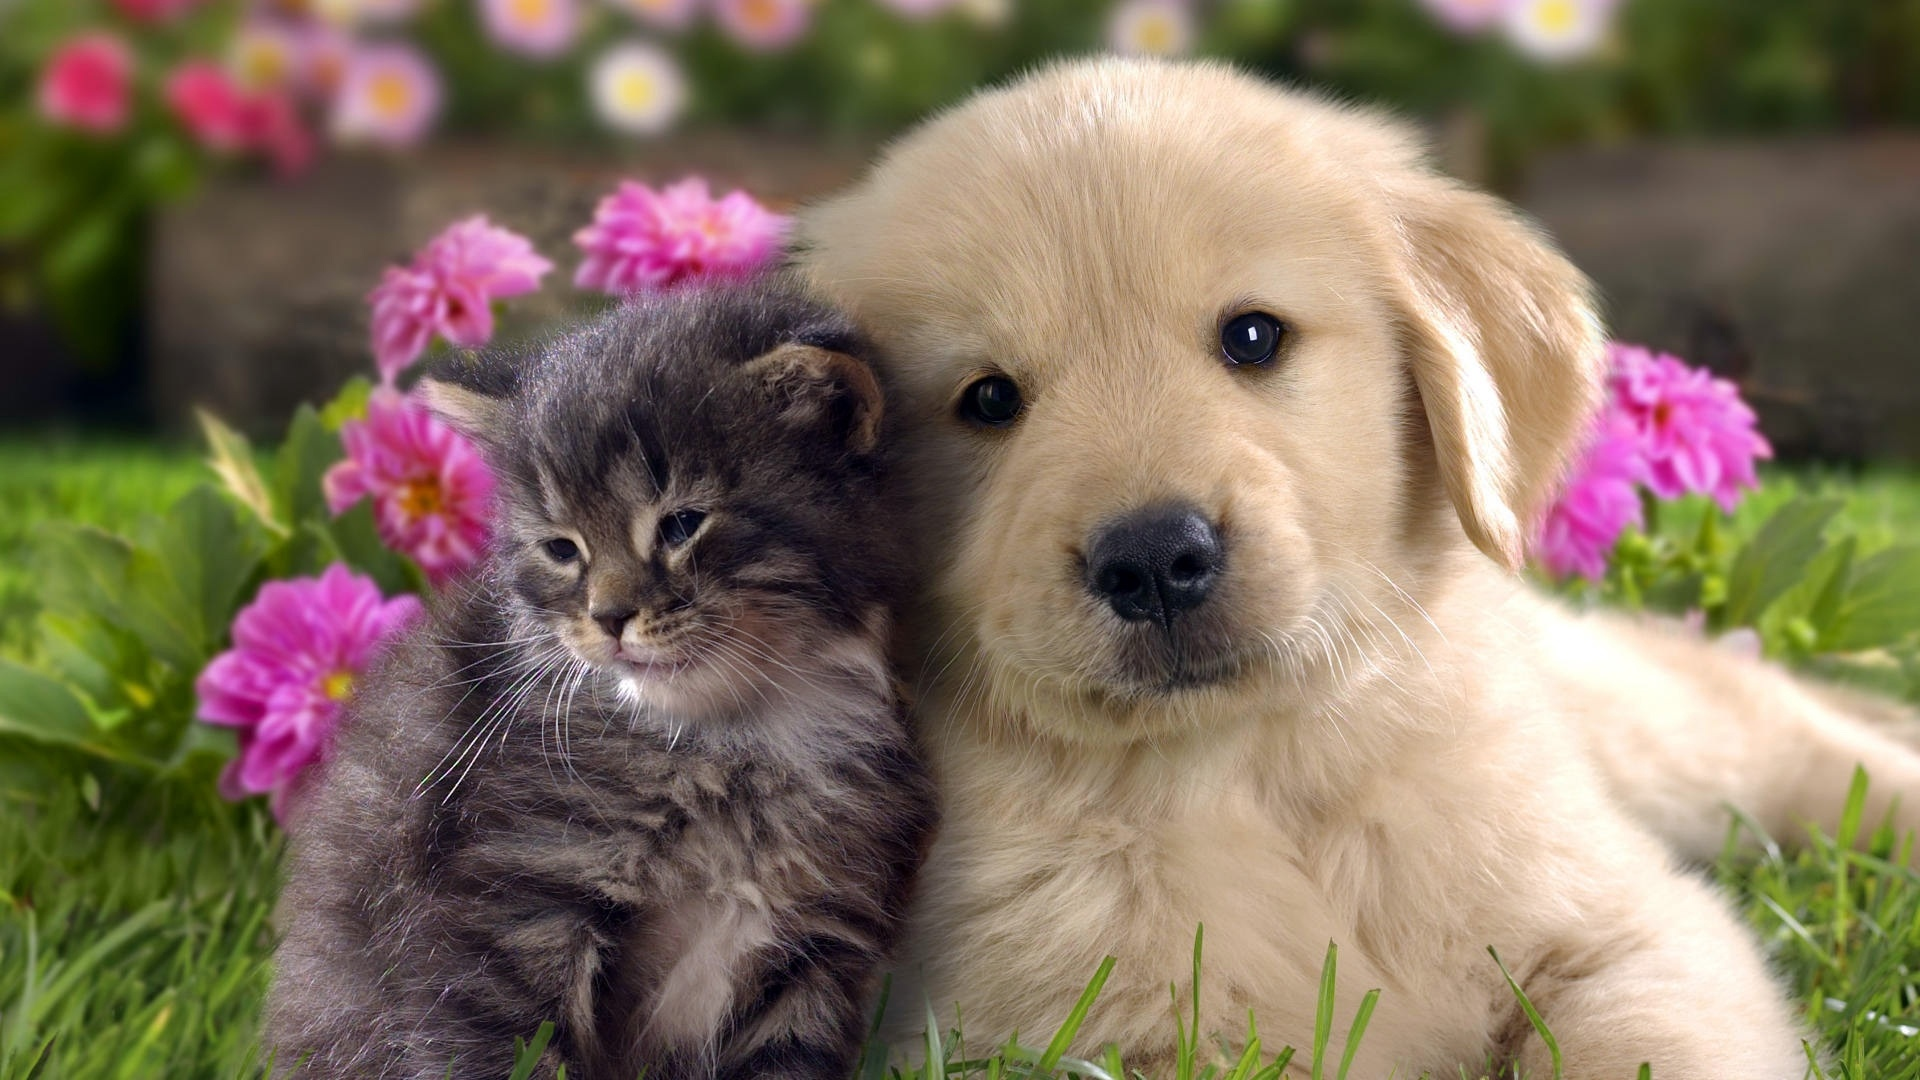 Cat and dog harmony wallpaper download Cat and dog harmony Cat 1920x1080